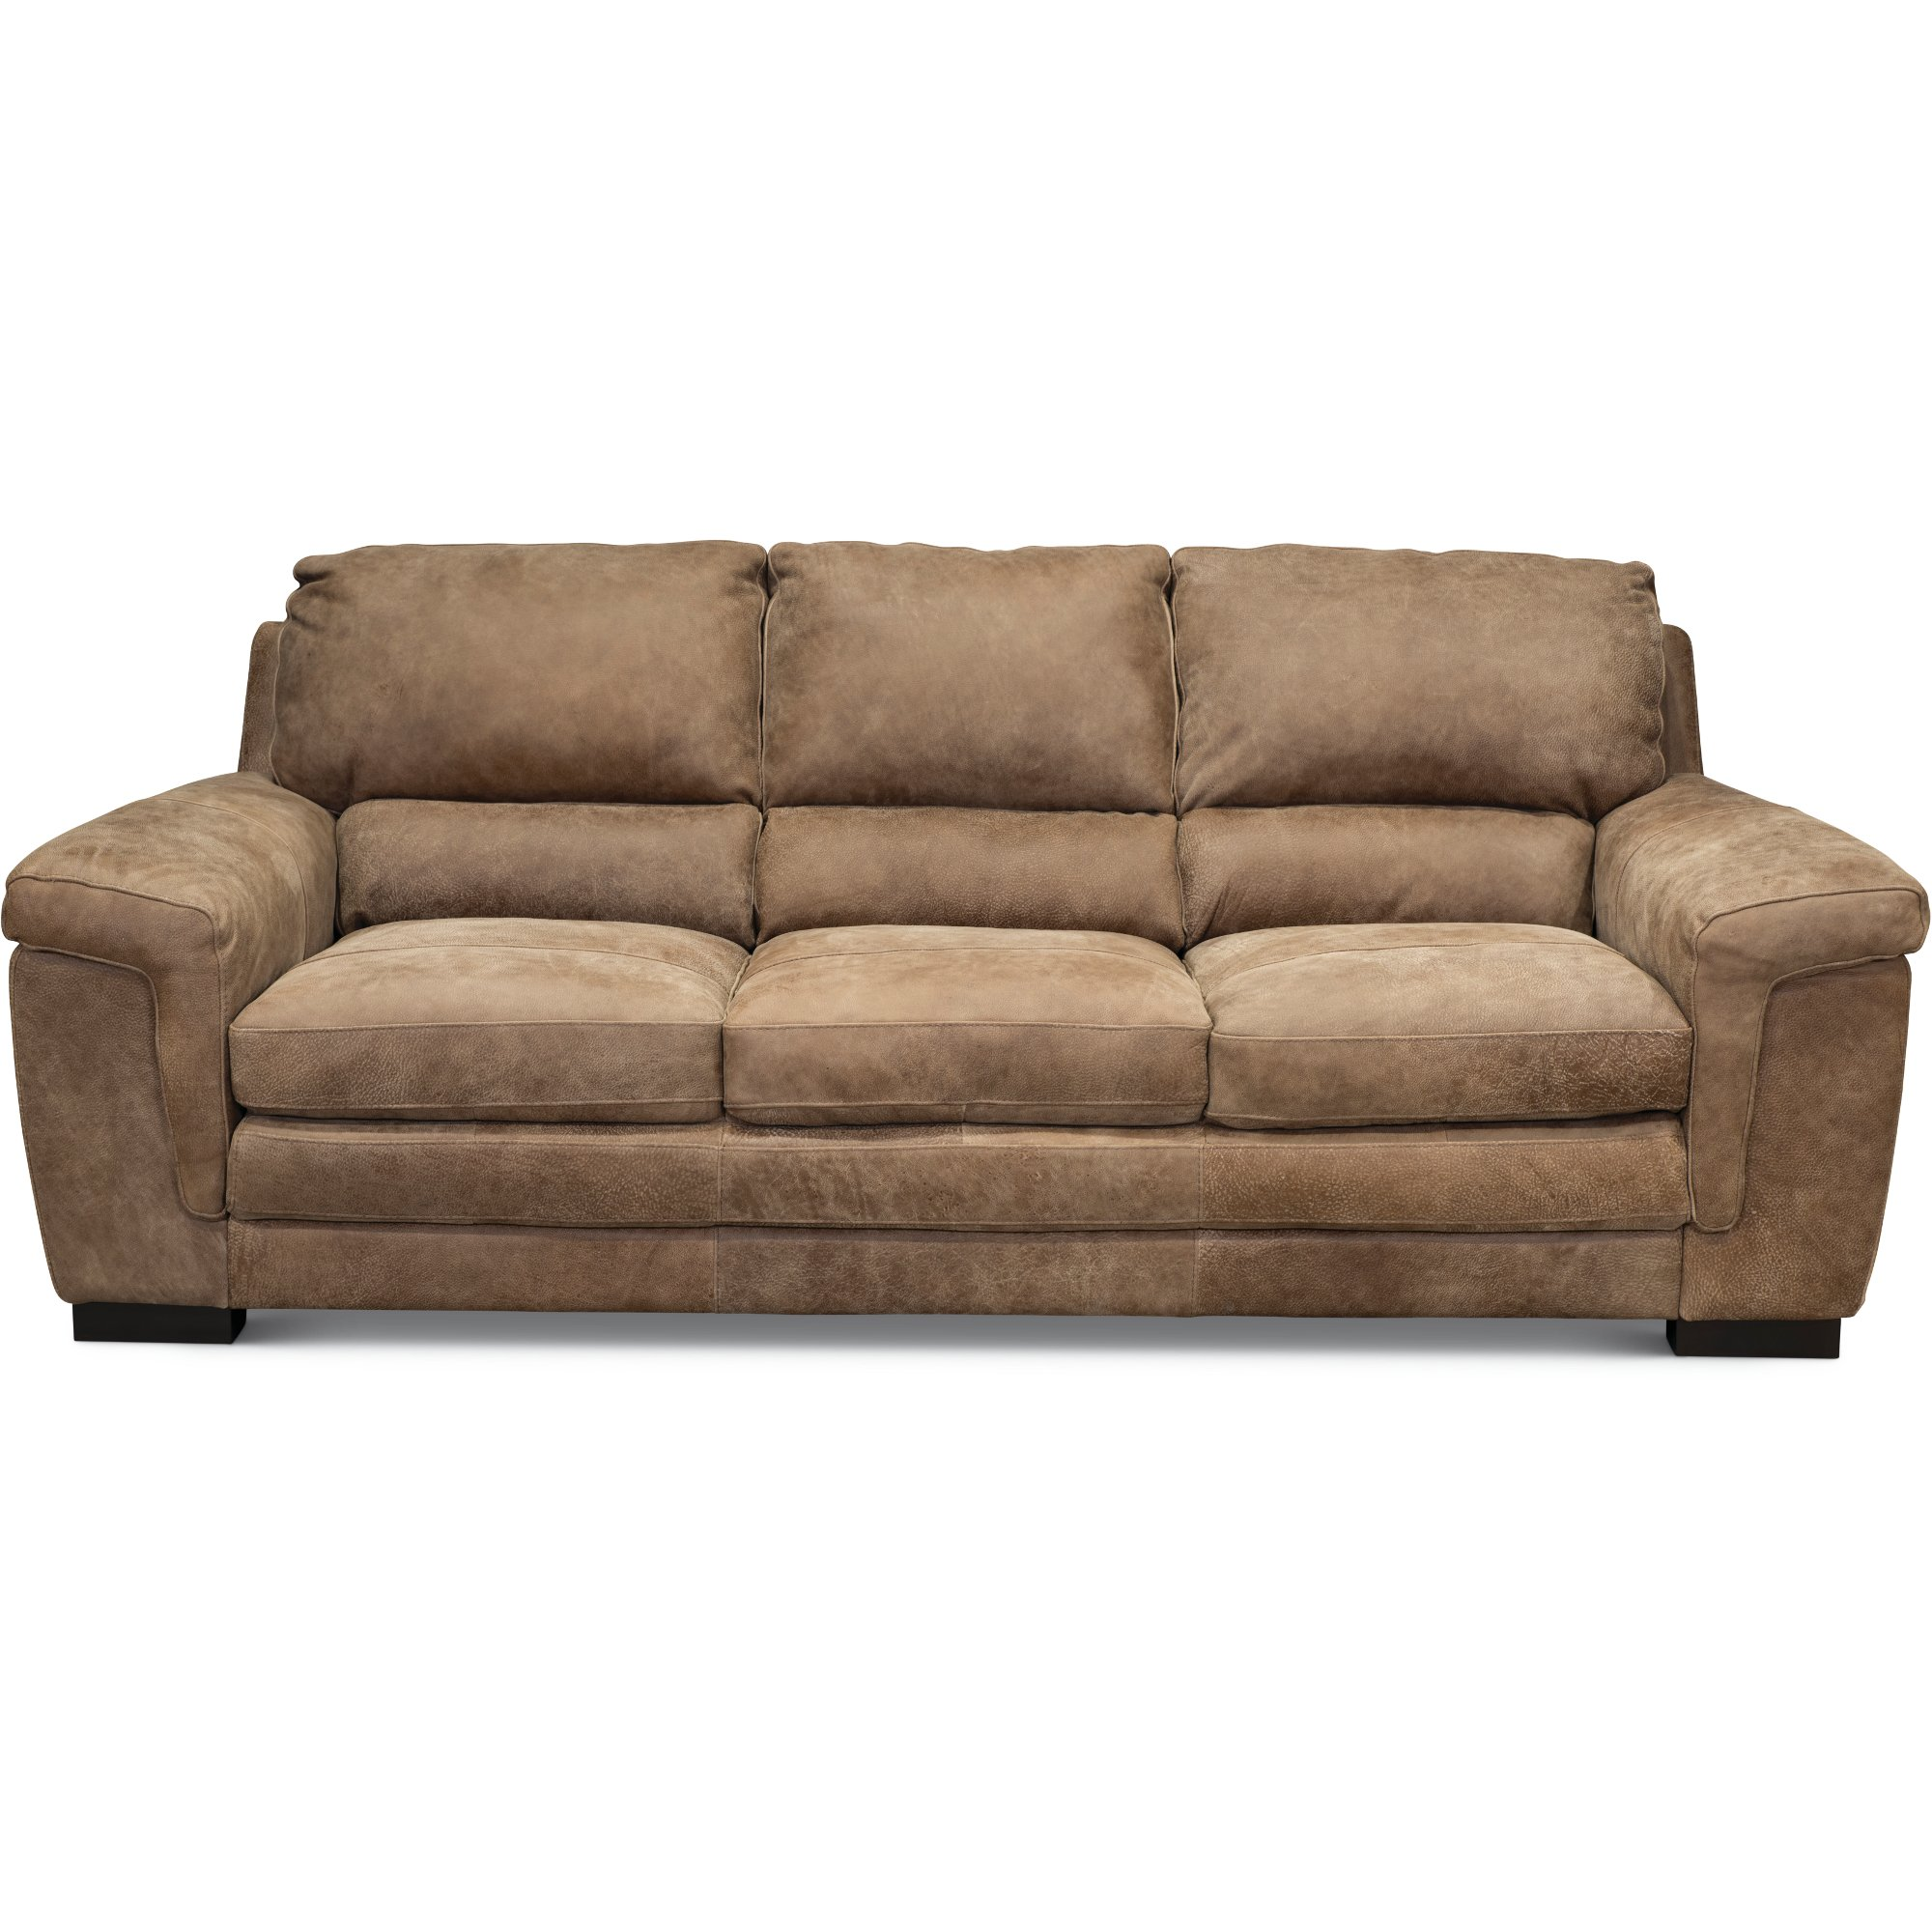 Casual Contemporary Espresso Leather Sofa   Outback   RC Willey Furniture  Store